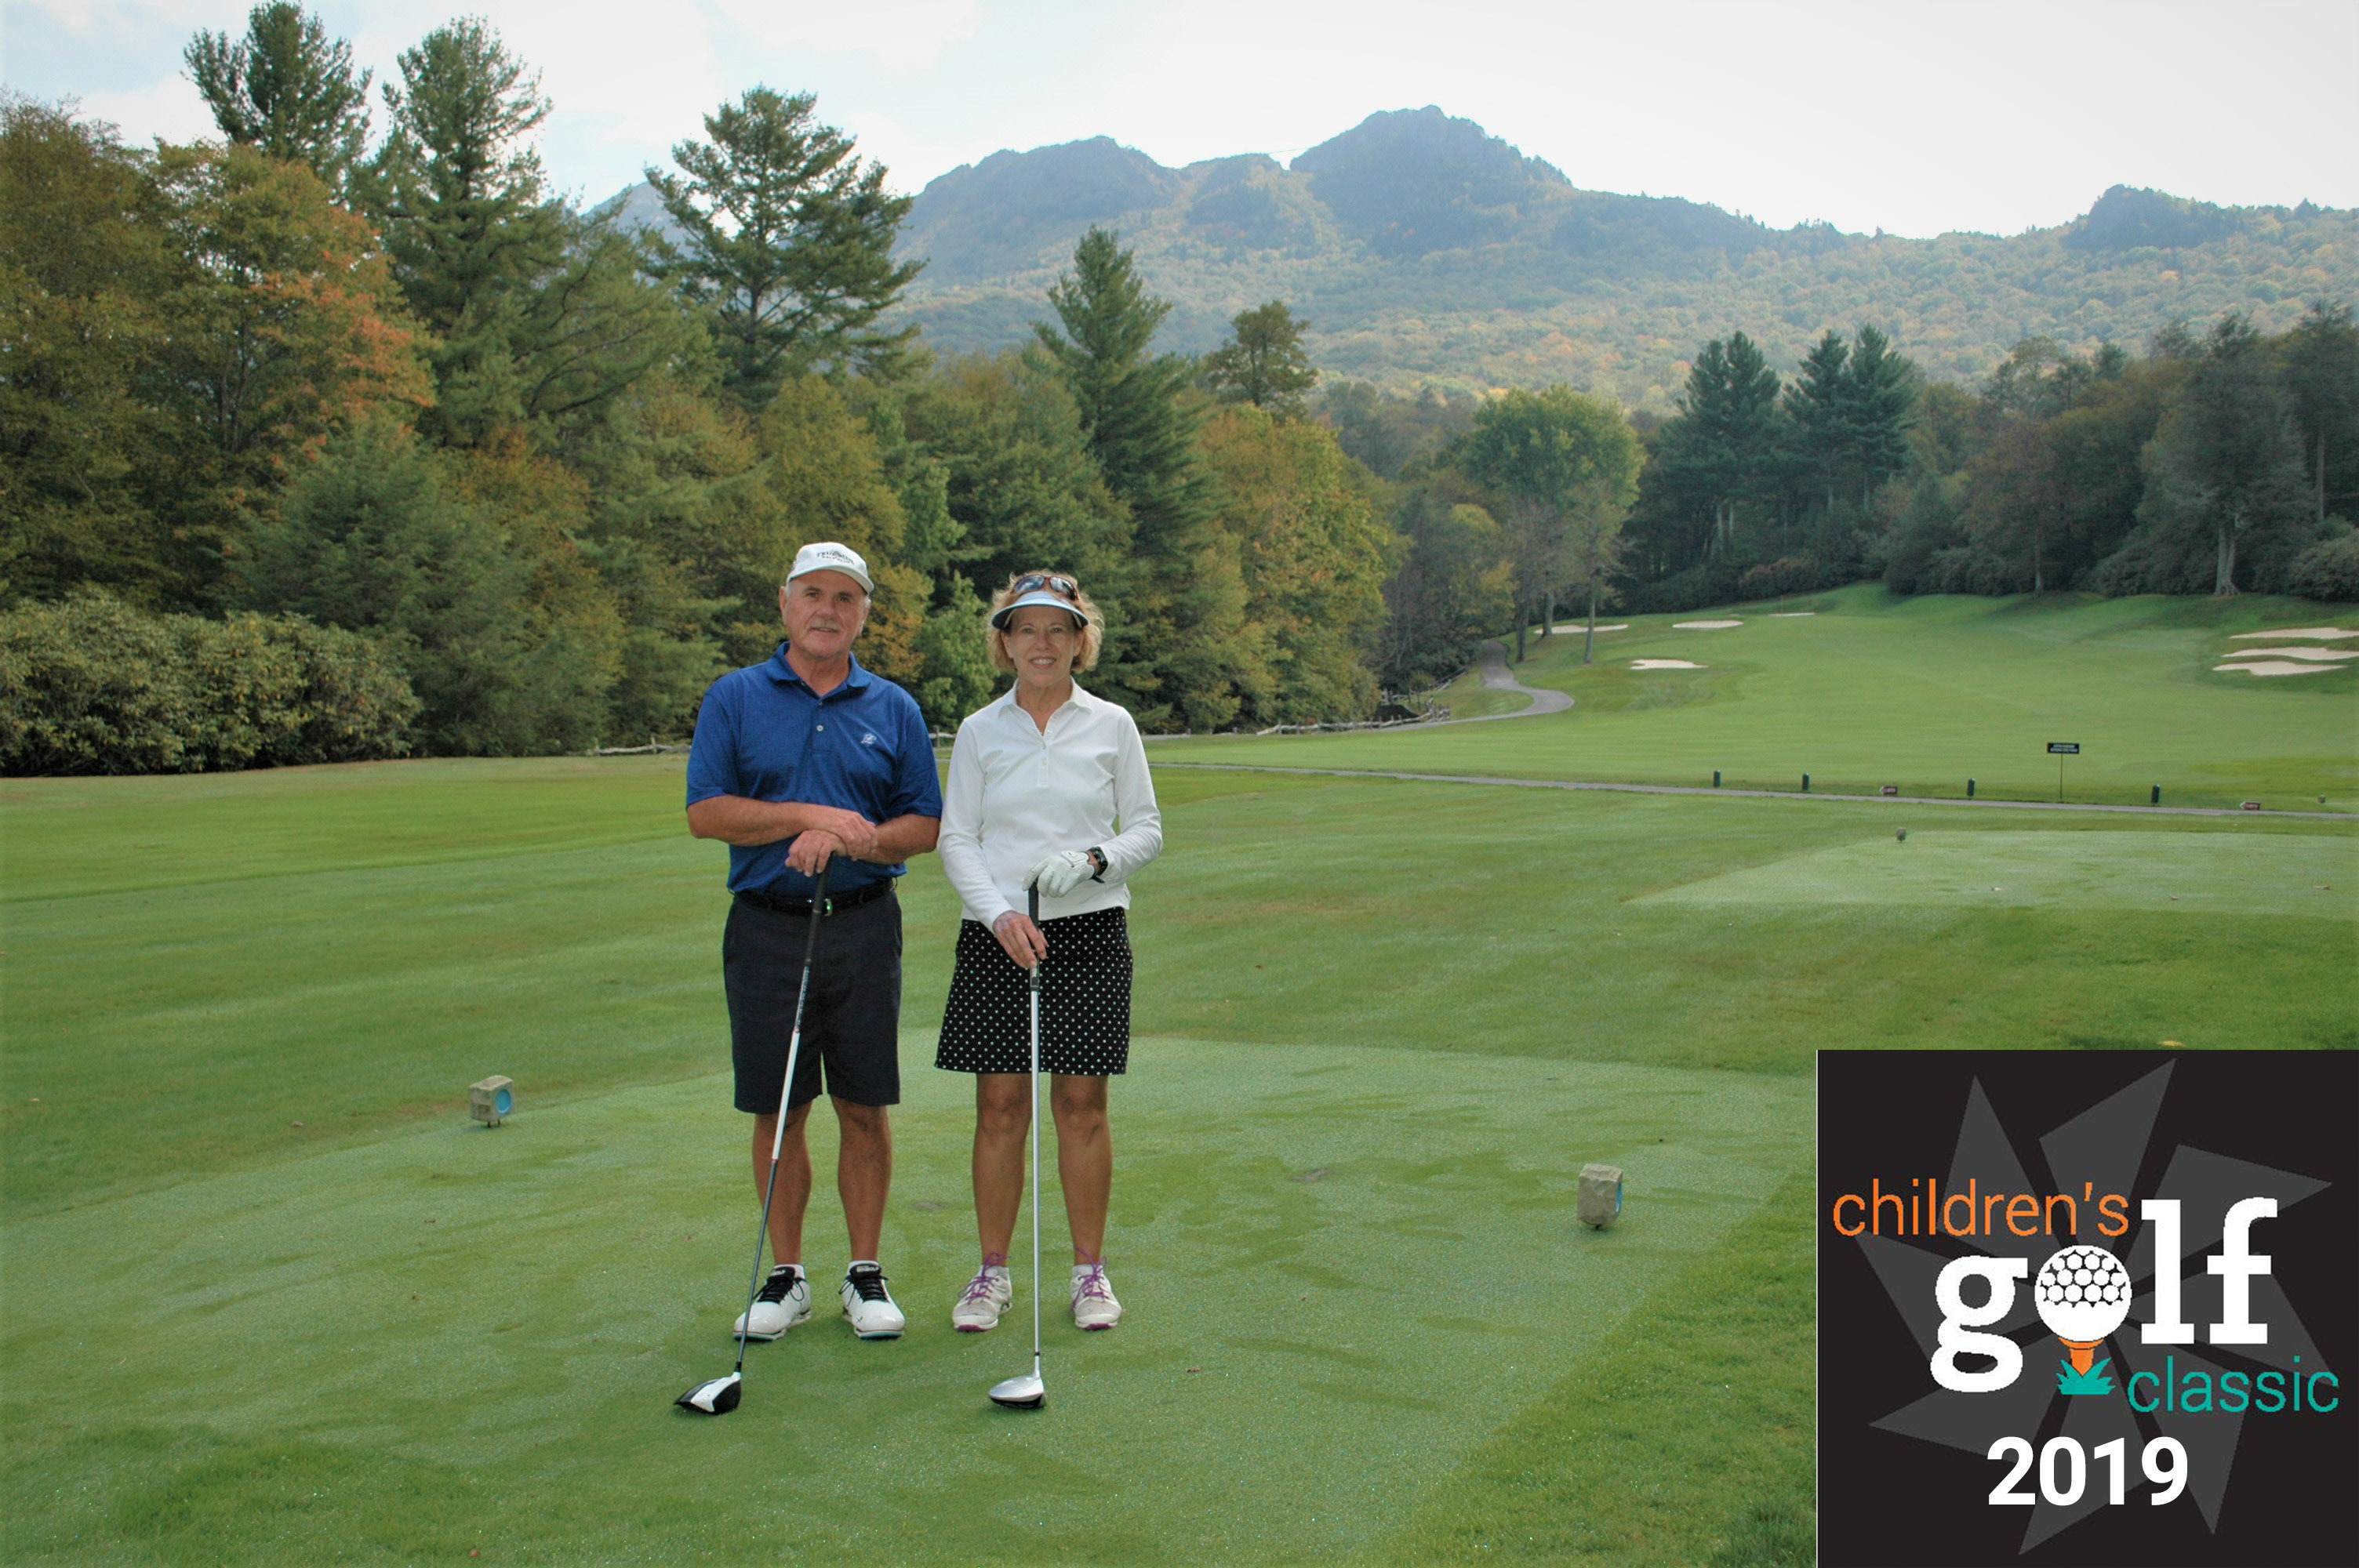 Children's Golf Classic gallery image #4